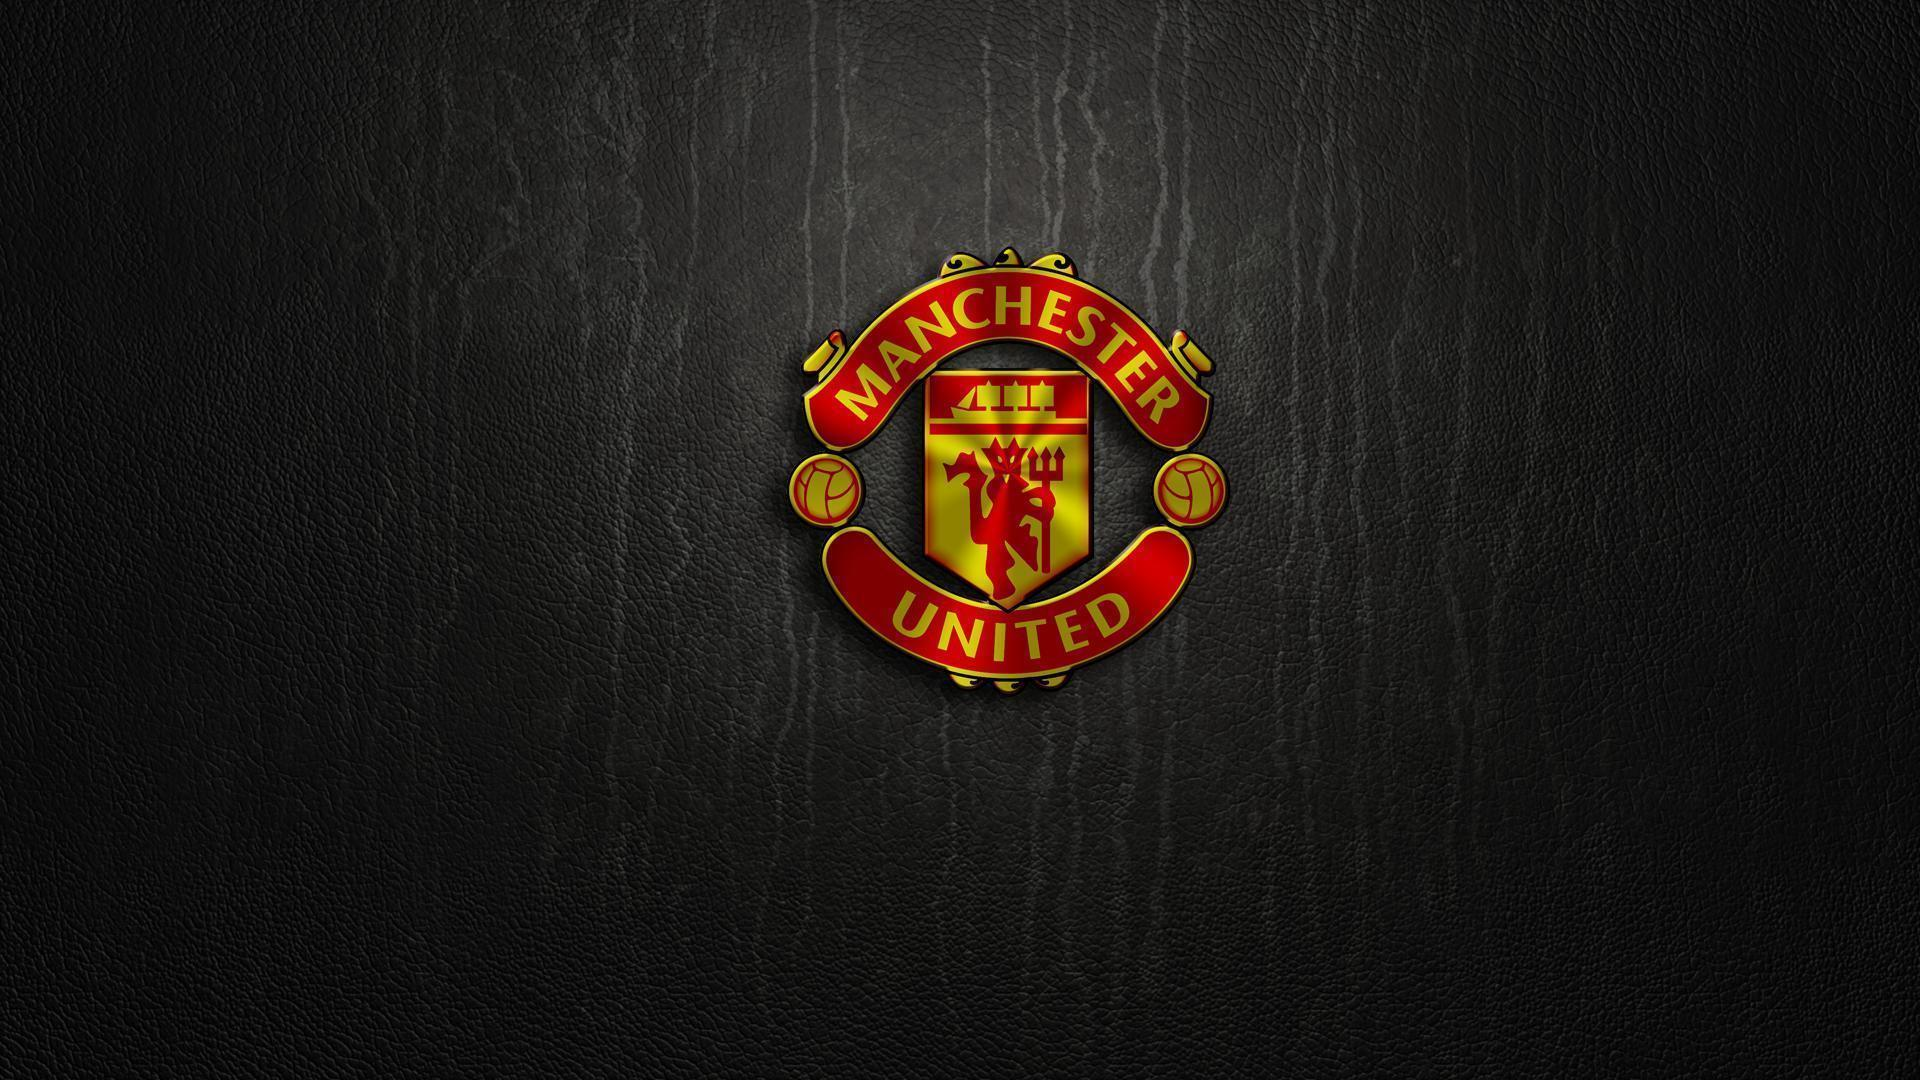 3d manchester united hd wallpaper 481 • songiadapro